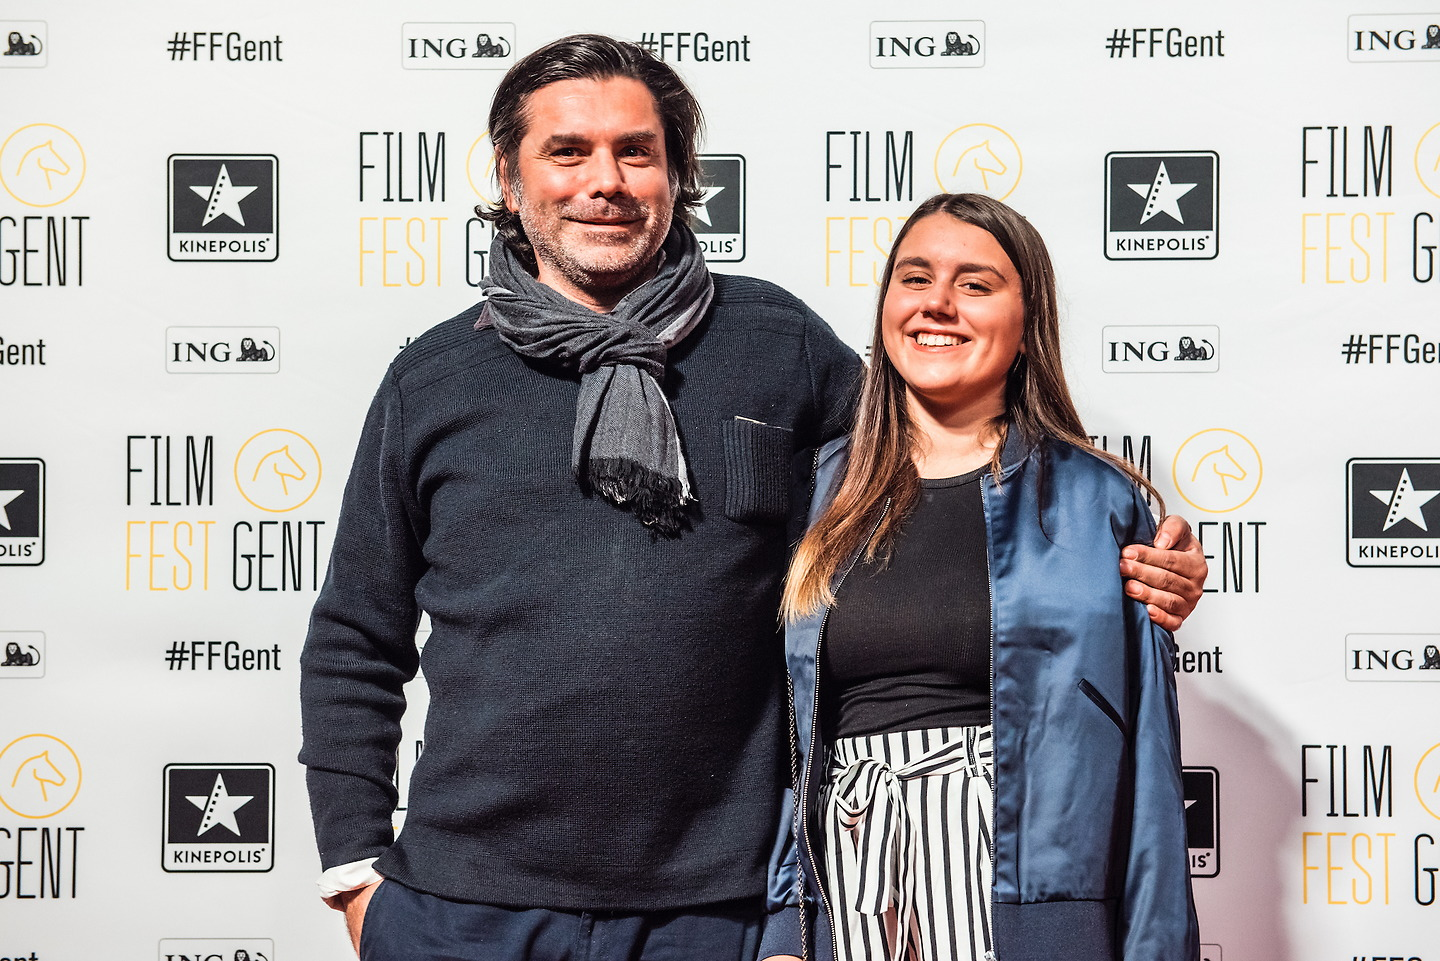 Film Fest Gent - Home